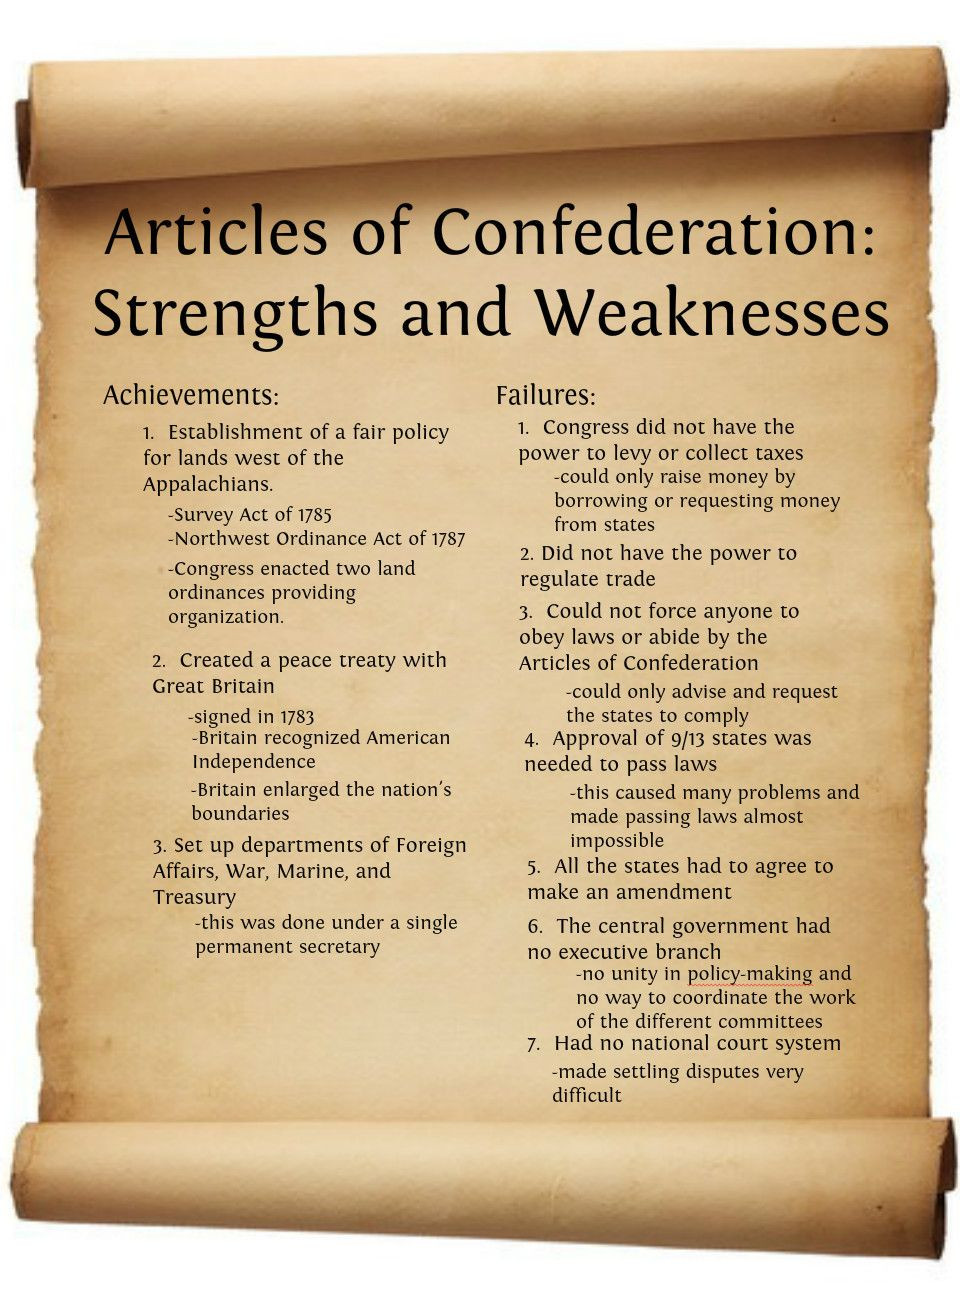 Articles Of Confederation Worksheet Answers Articles Of Confederation Strengths and Weaknesses